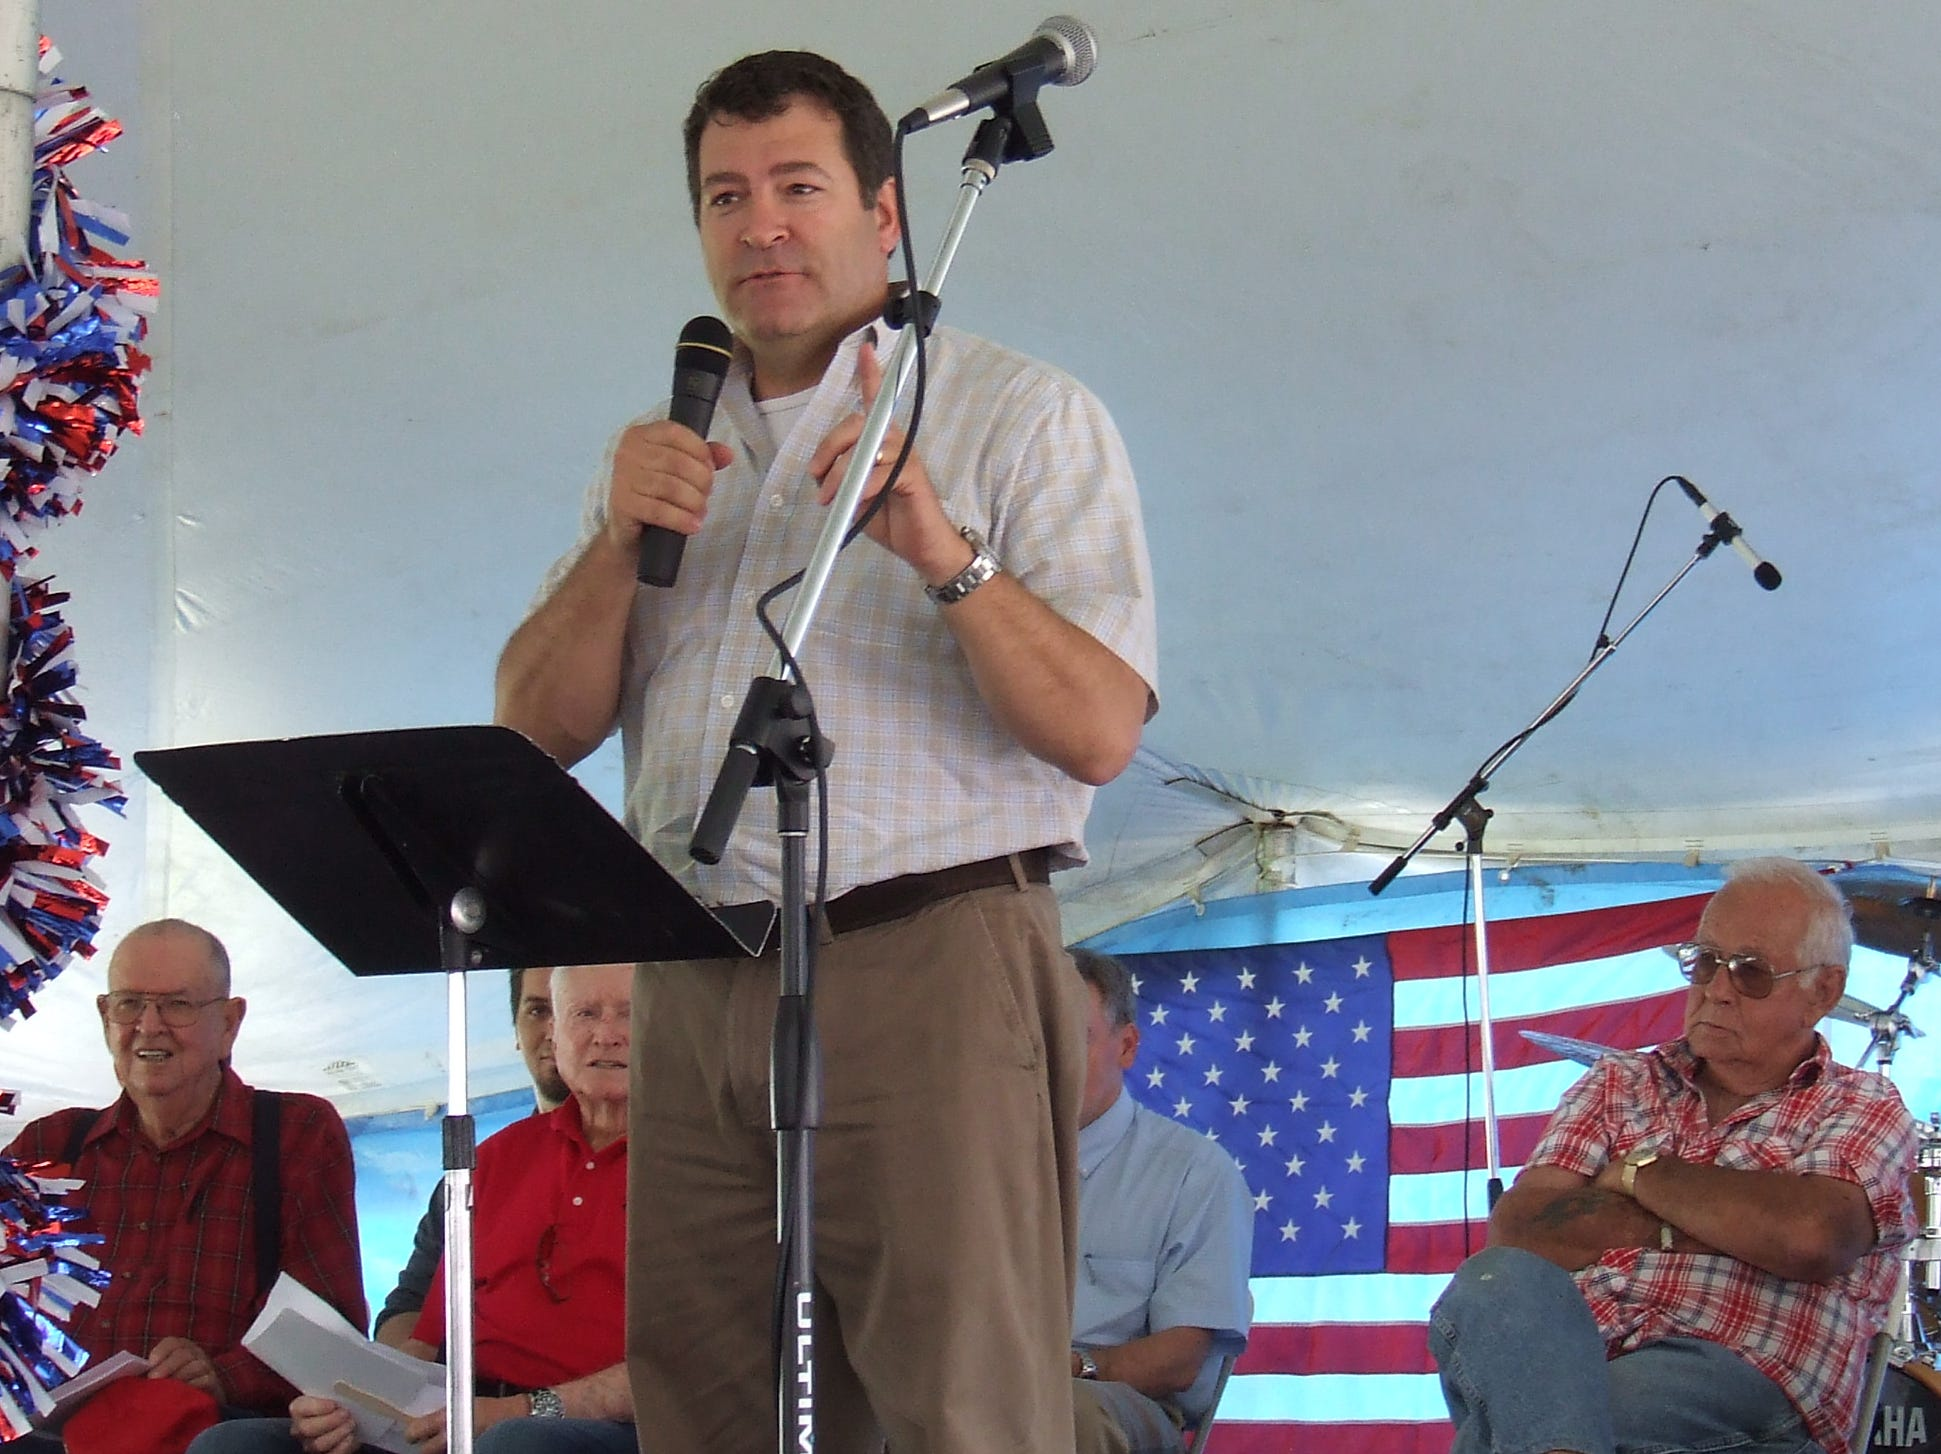 State Sen. Mark Green addresses the crowd at the Eagle Fest opening ceremonies in May 2013.